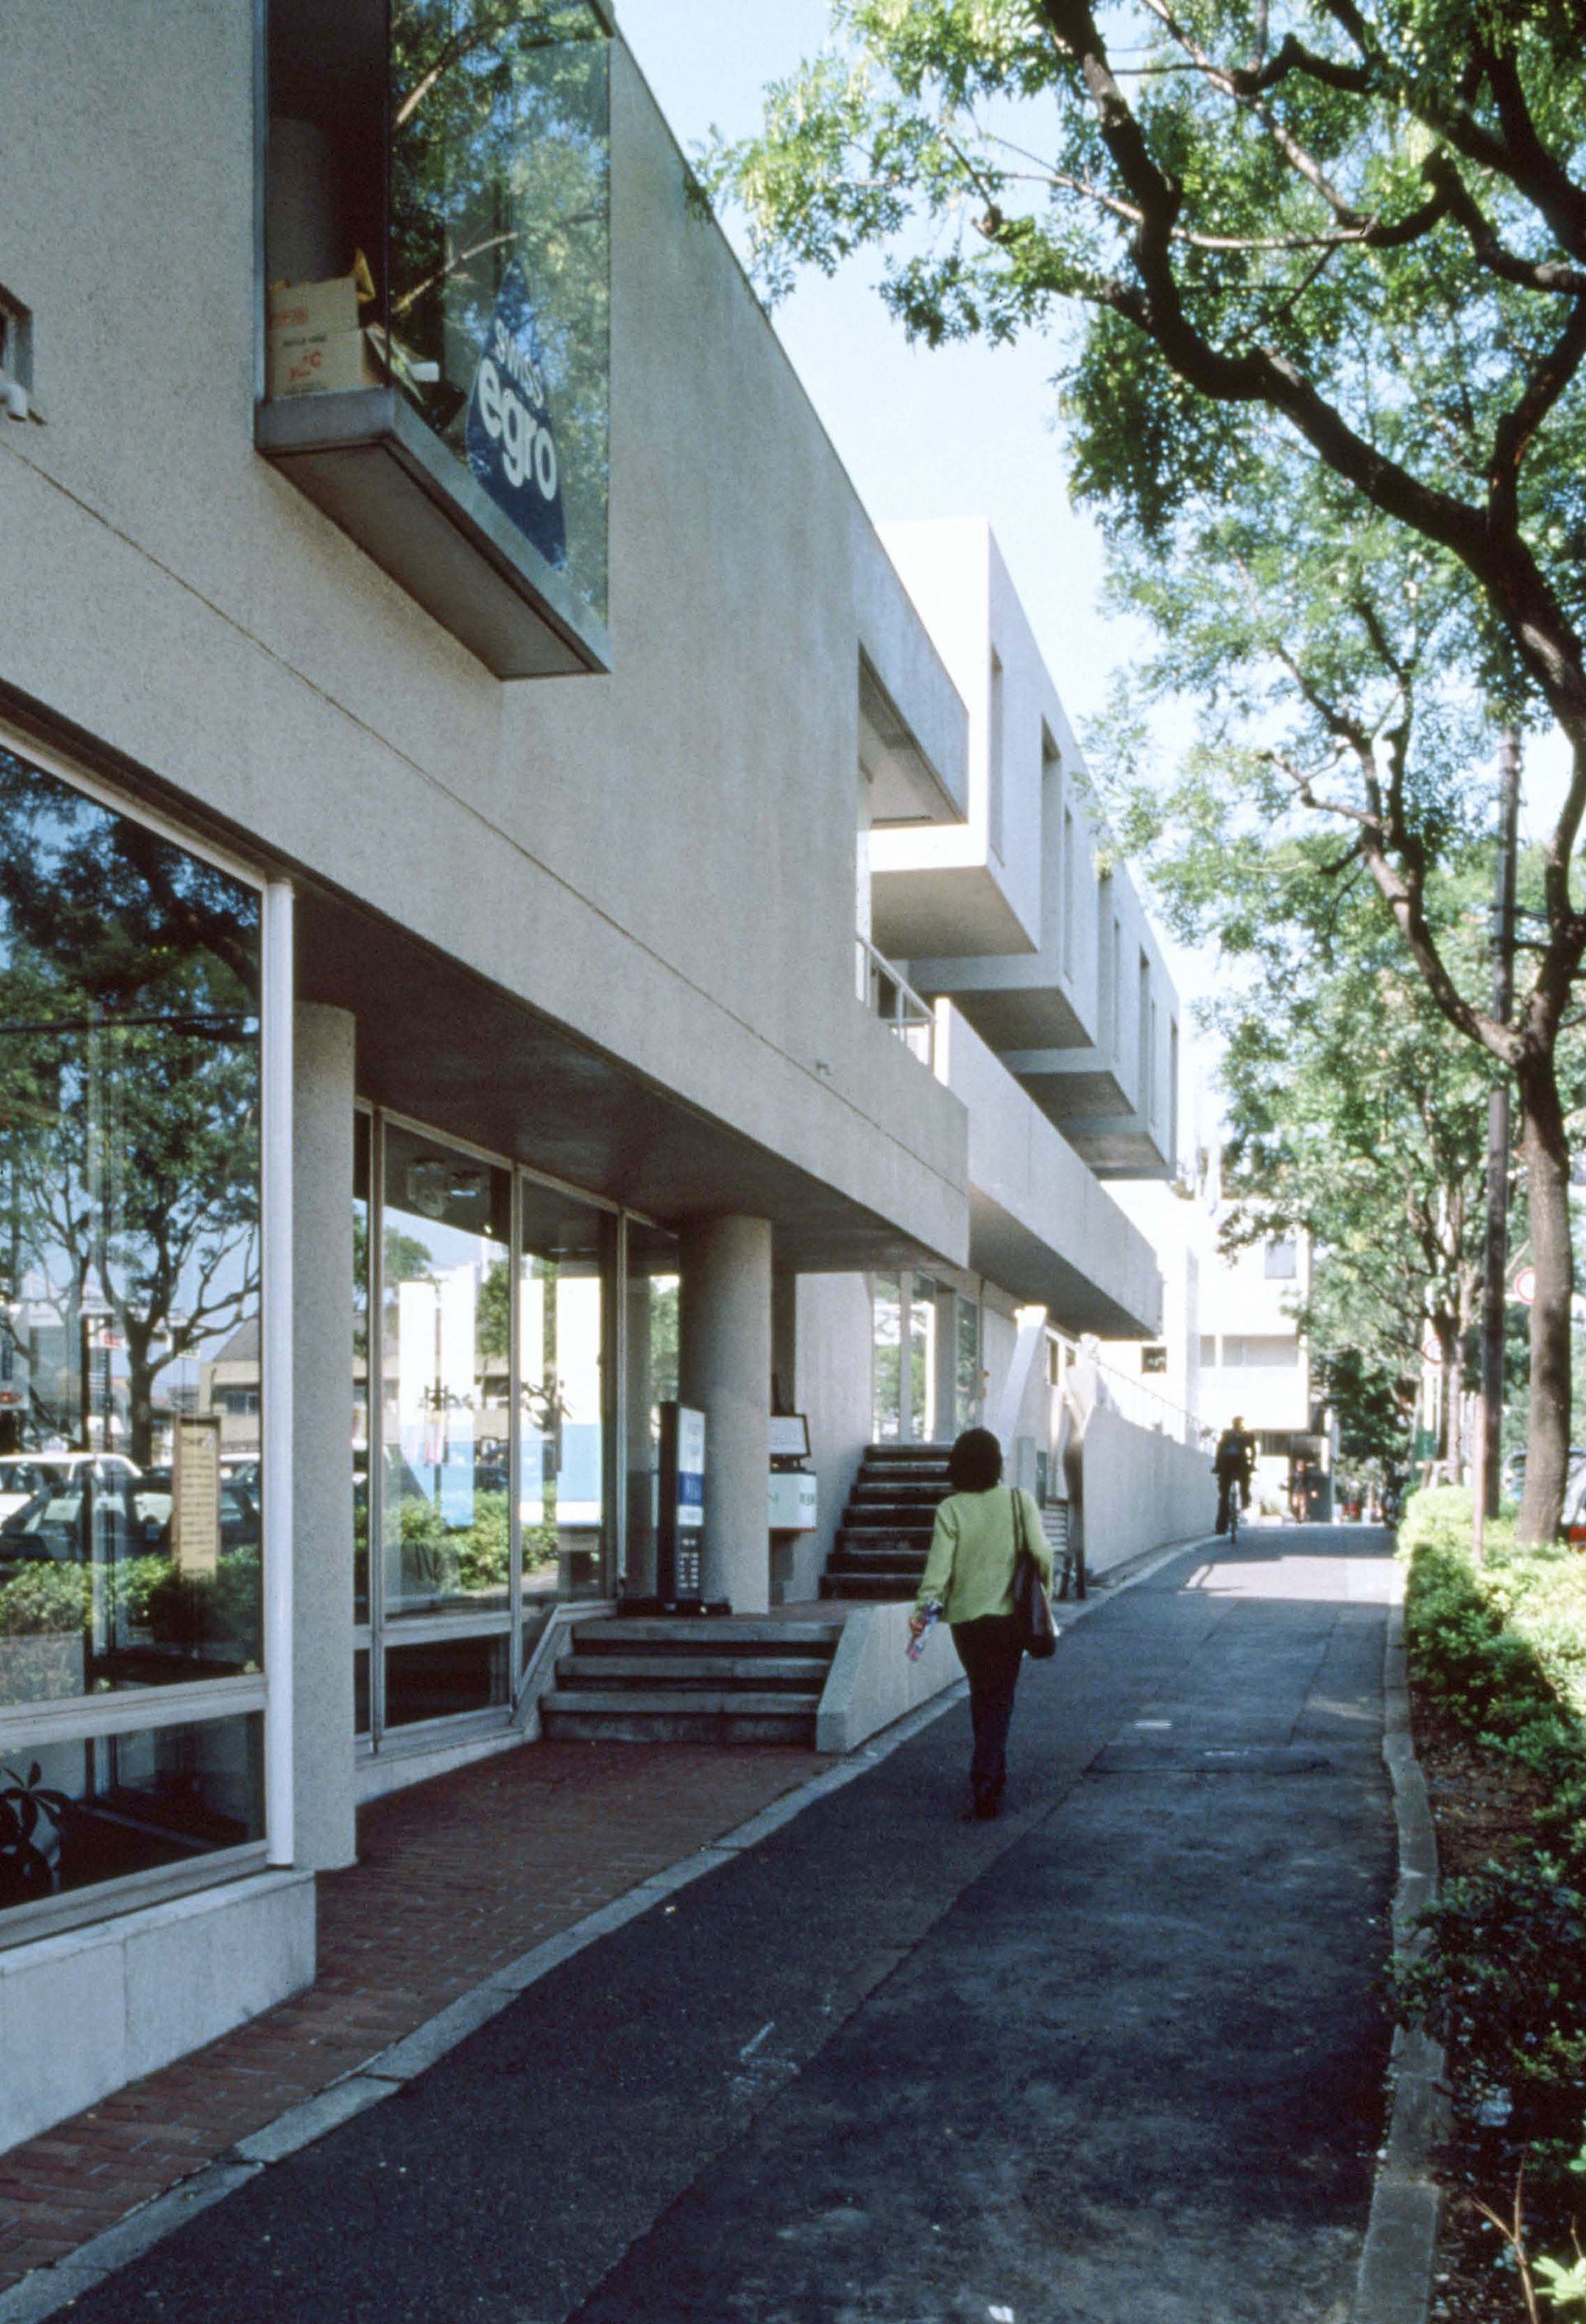 Hillside Terrace, Tokyo. Project completed over seven phases, 1969-1998, Phase 1, 1969| Fumihiko Maki| Maki and Associates| STIR